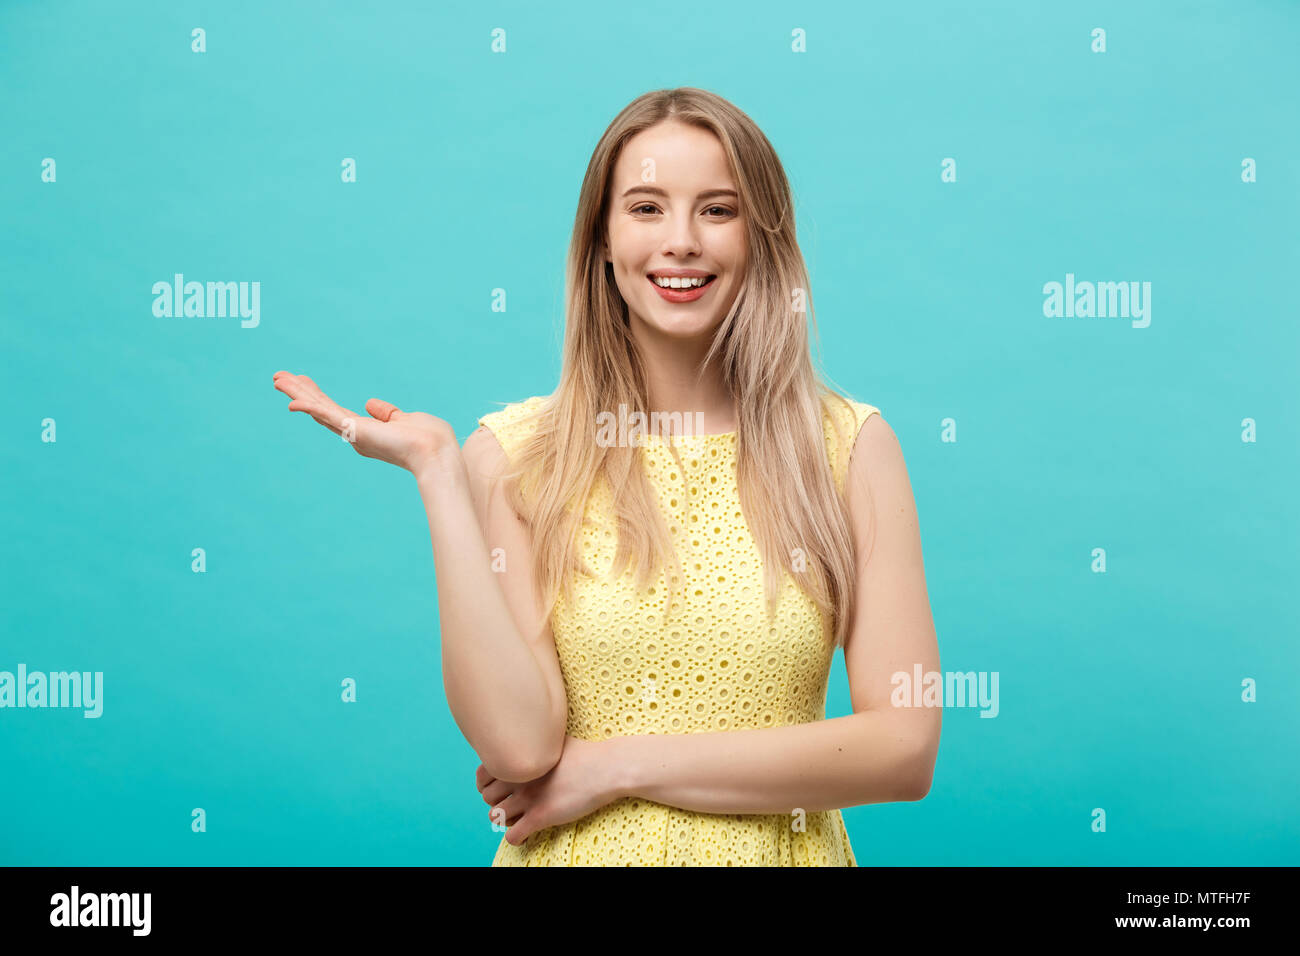 Portrait of stylish, nice, cute, caucasian woman with hairstyle in yellow dress holding in hand on empty places, copy spaces on her palms, looking at camera, isolated on blue background - Stock Image